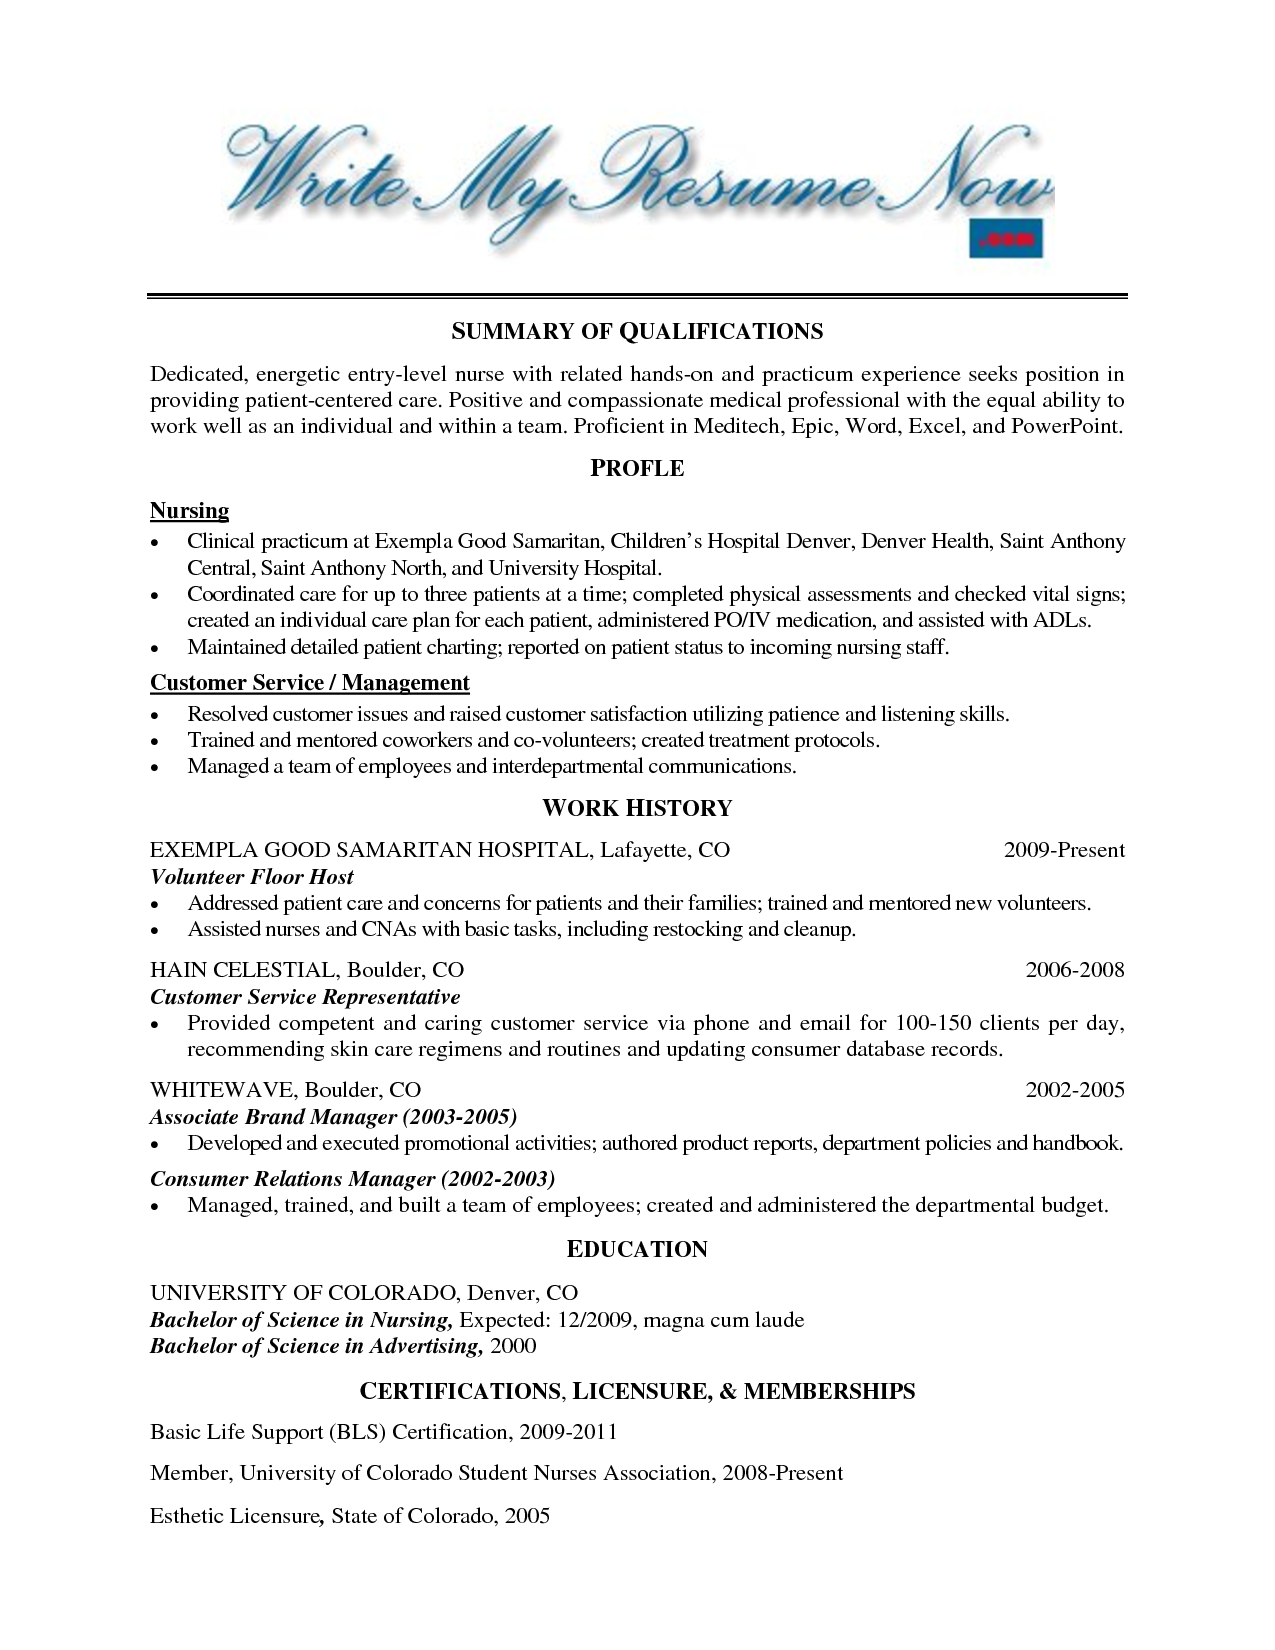 Hospital Volunteer Resume Example resumecareerinfo – Volunteer Resume